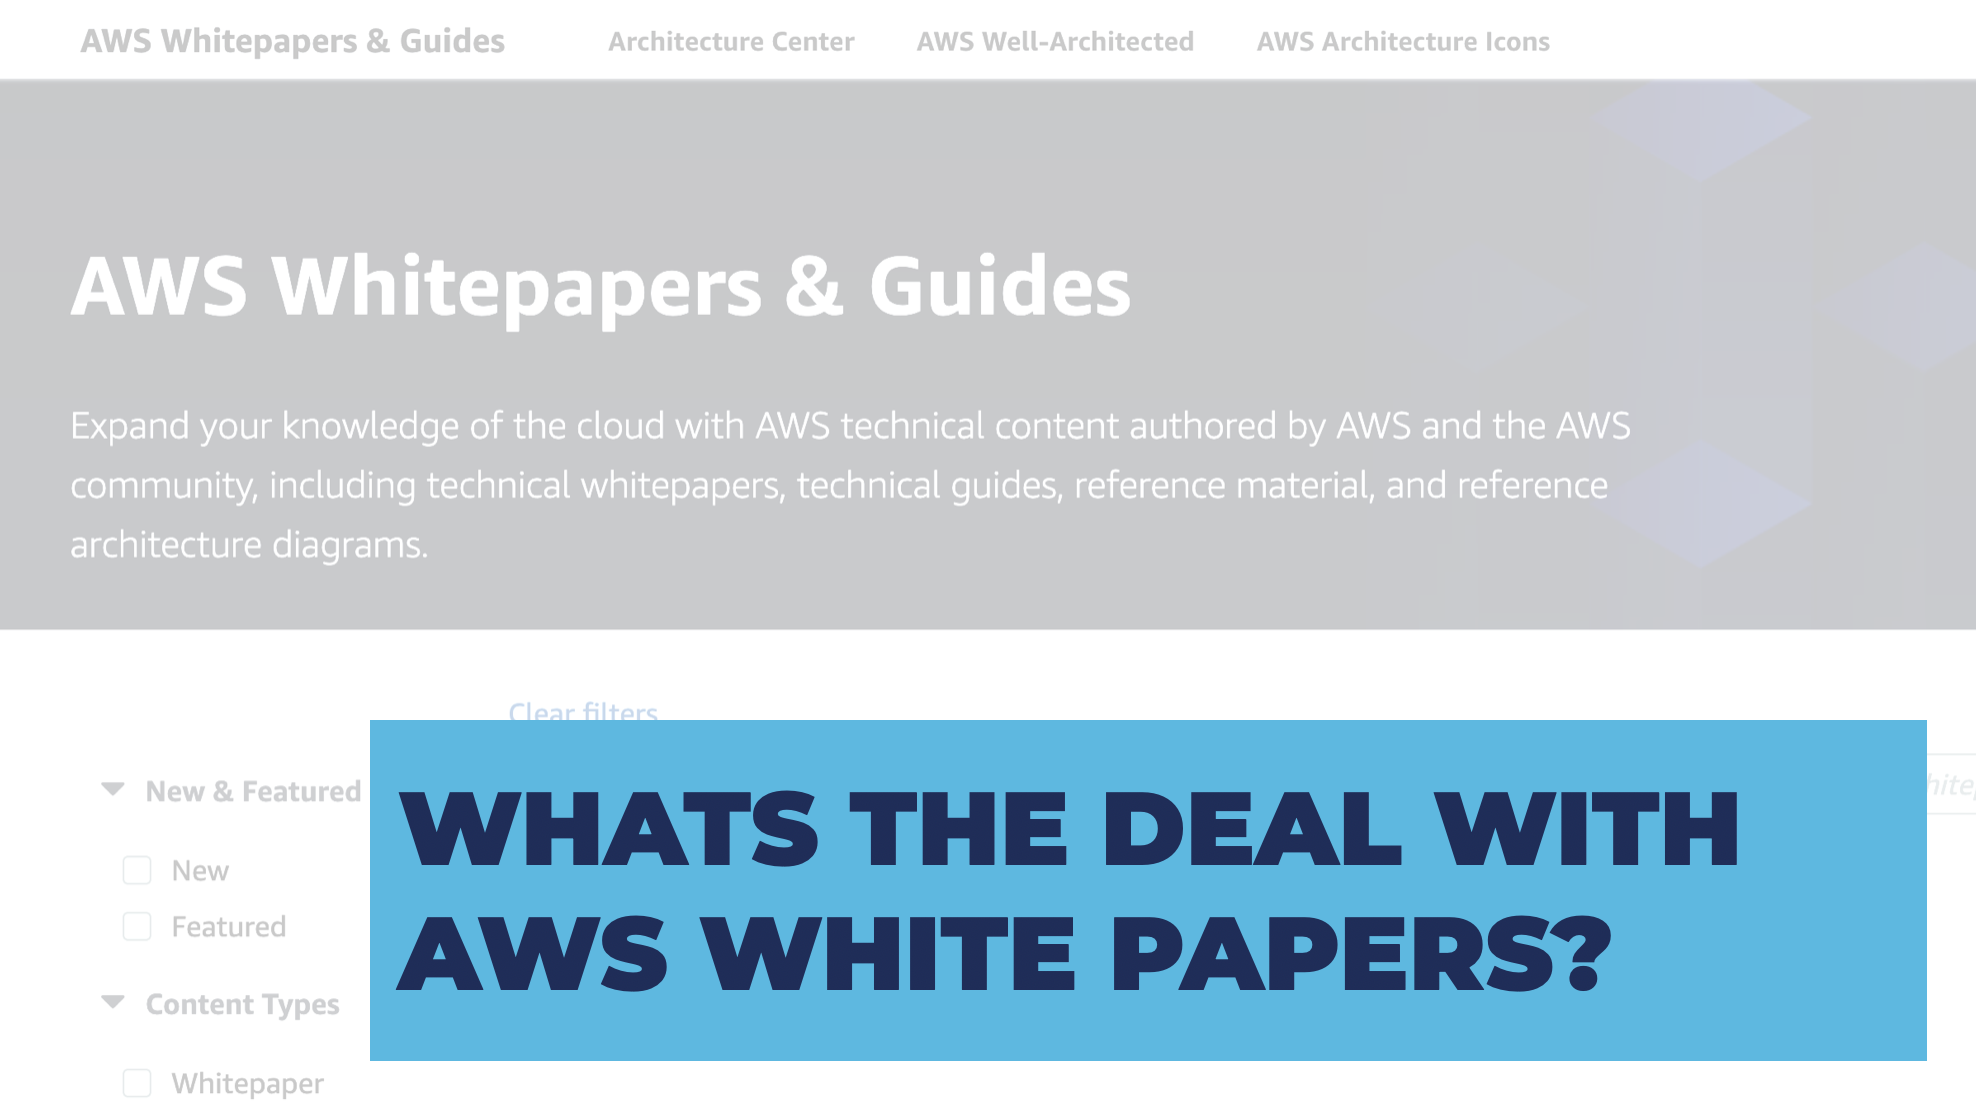 What's the deal with whitepapers?